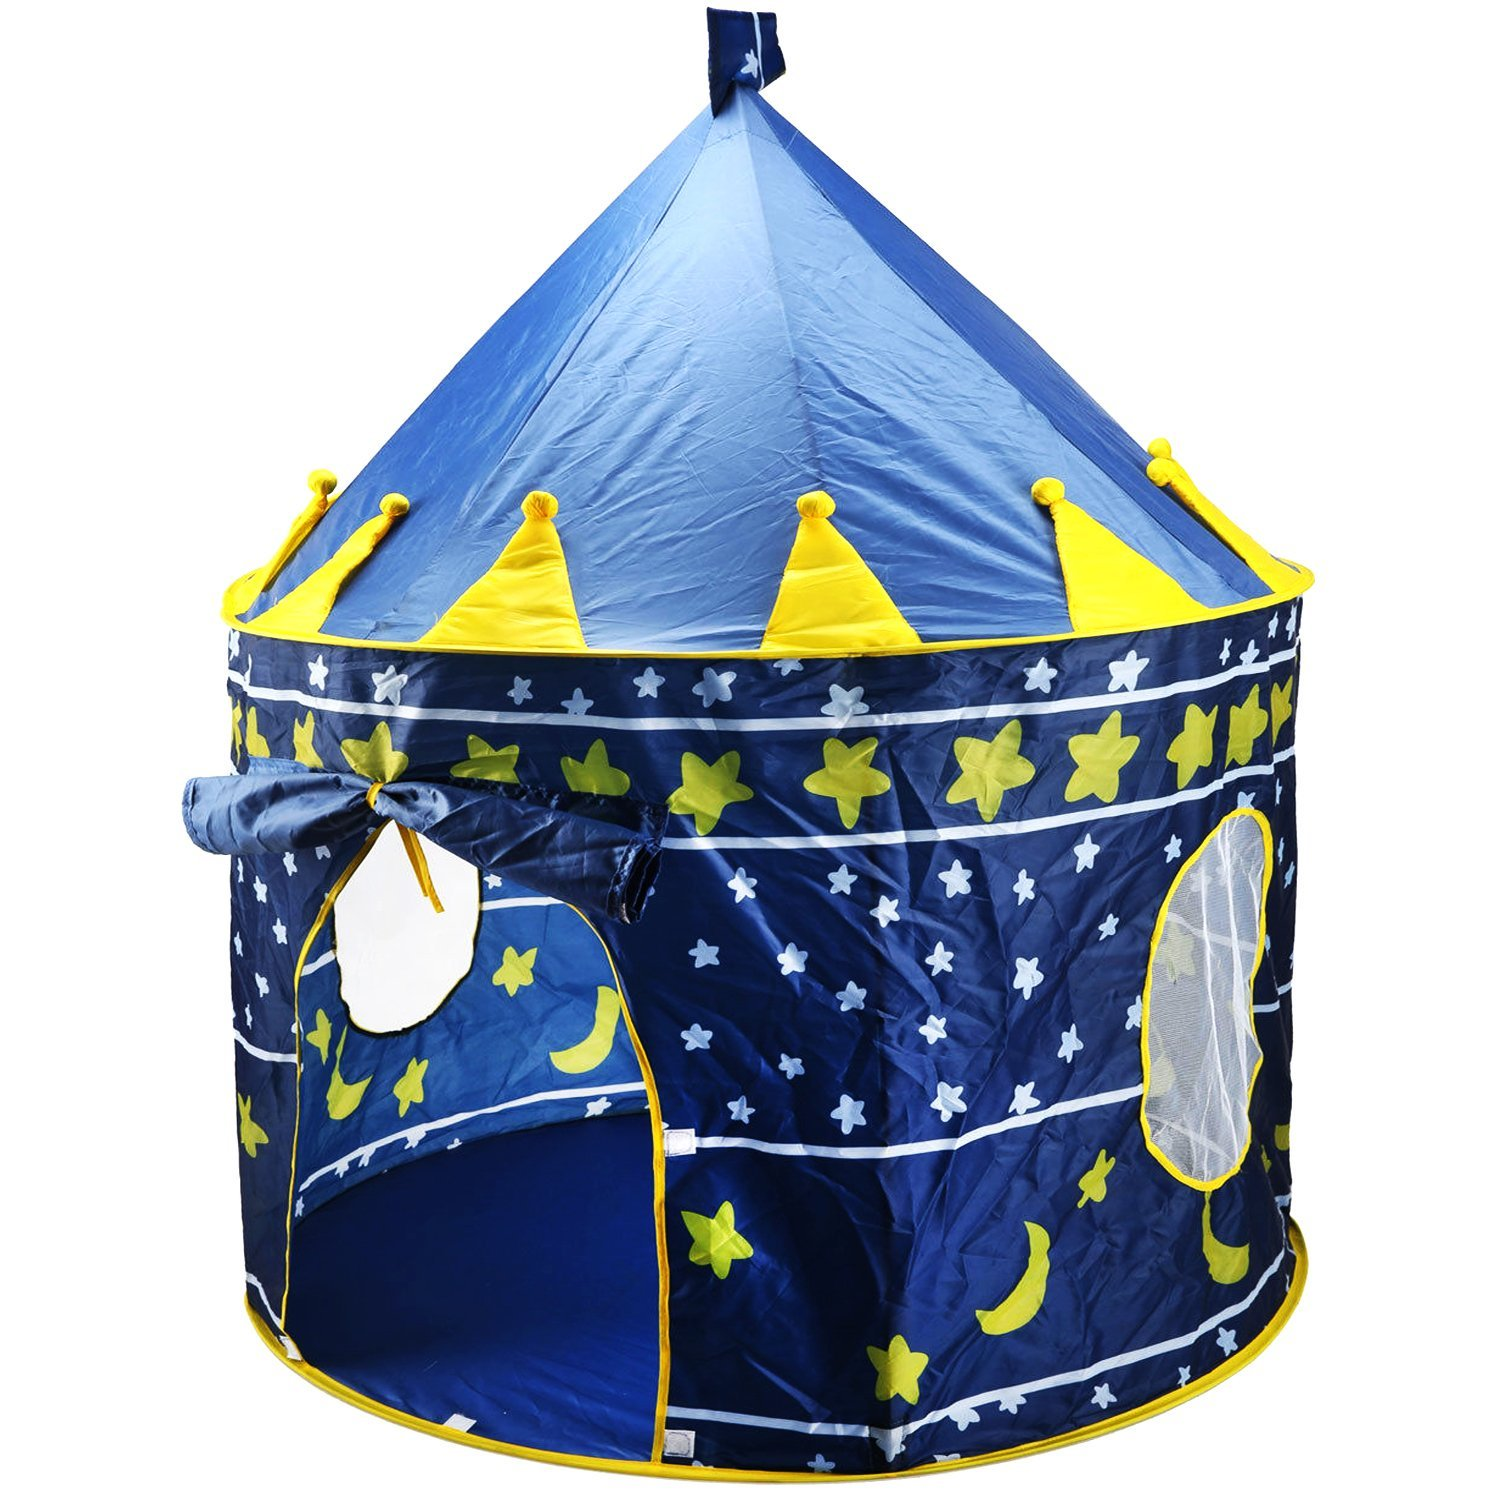 Children Play Tent Boys Girls Prince House Indoor Outdoor Blue Foldable Tent with Case by Creatov  sc 1 st  Walmart.com & Play Tents - Walmart.com